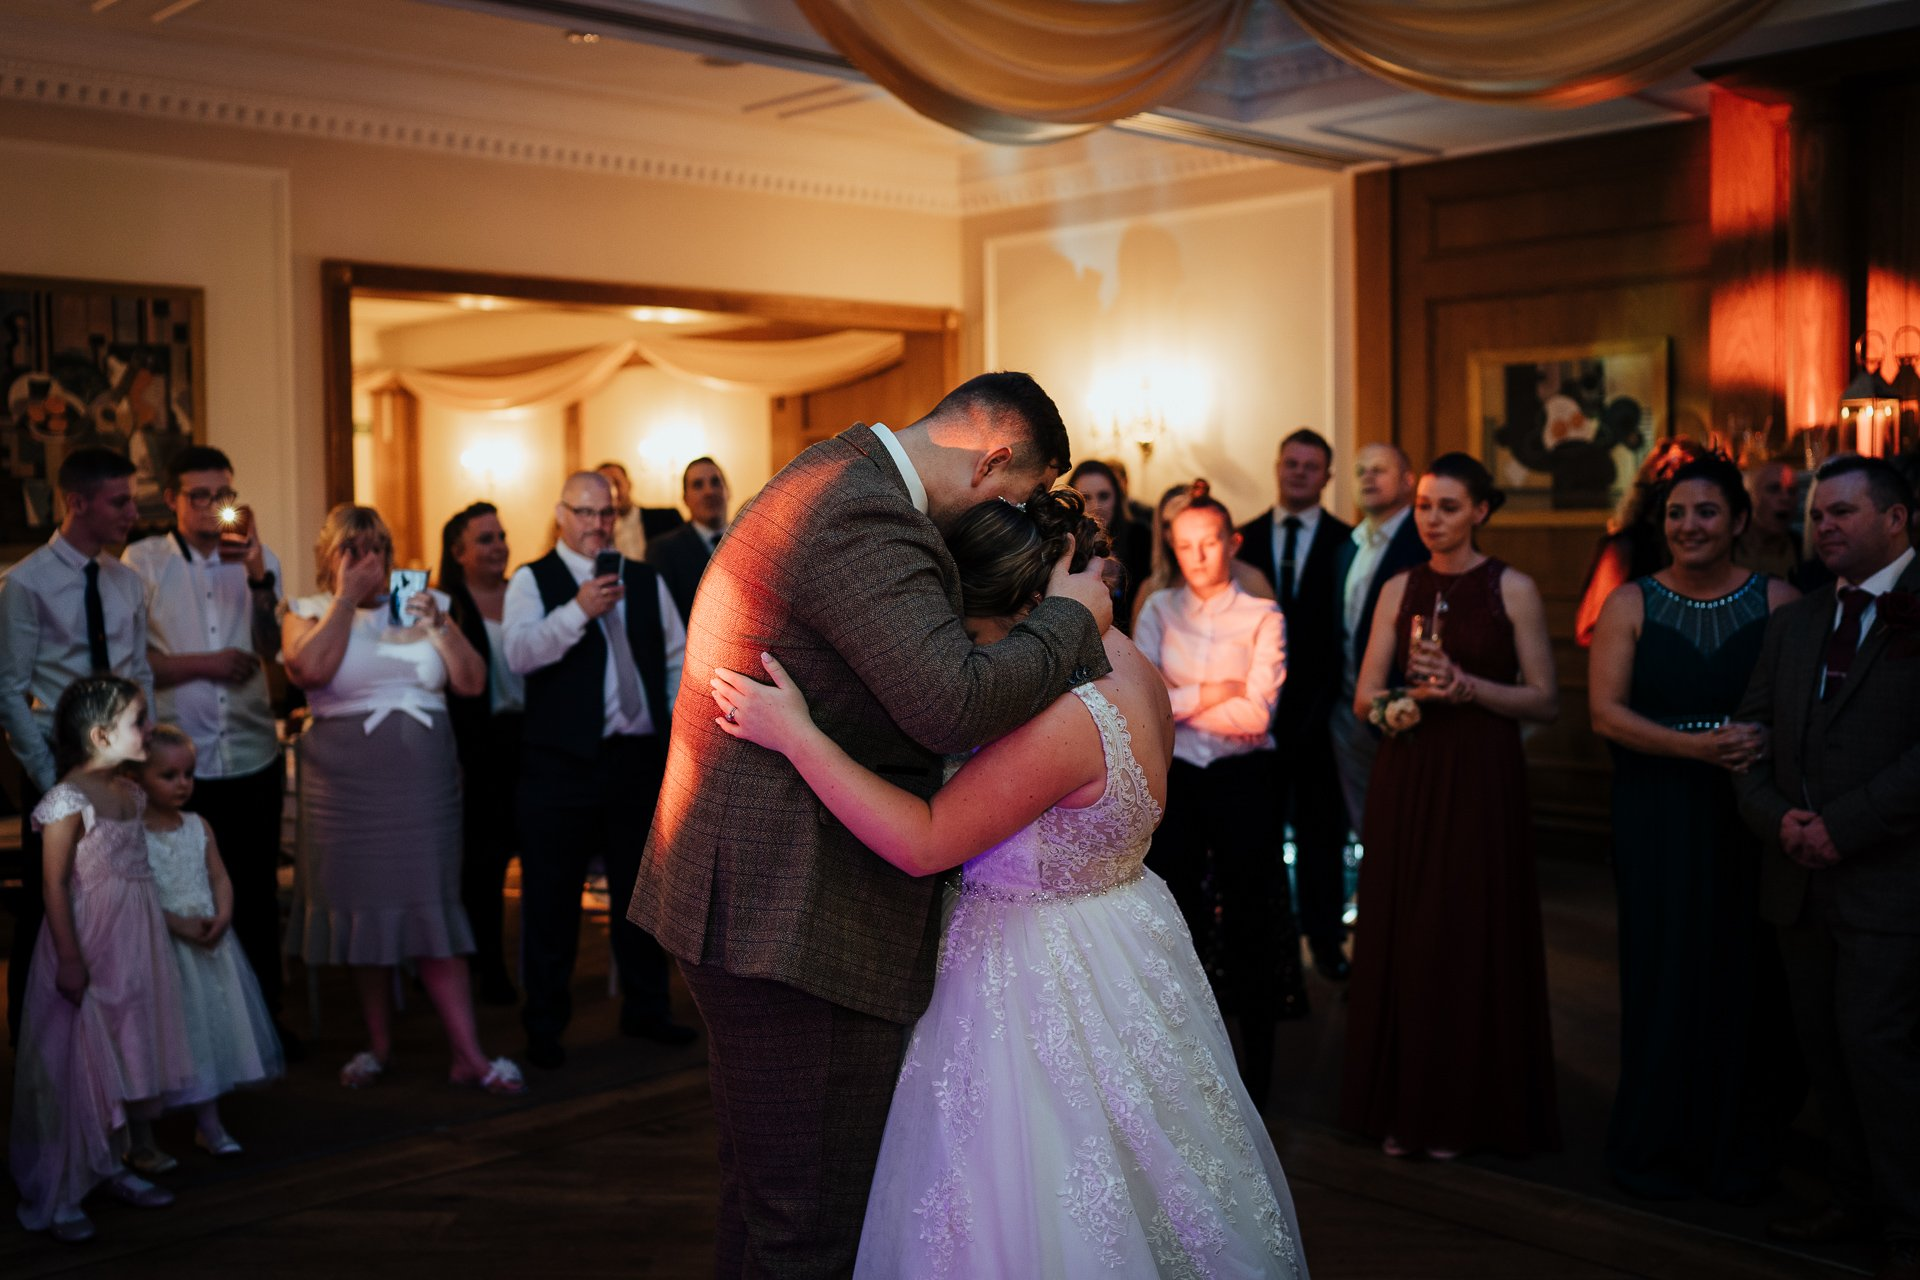 Bride and Groom holding each other crying during their first dance